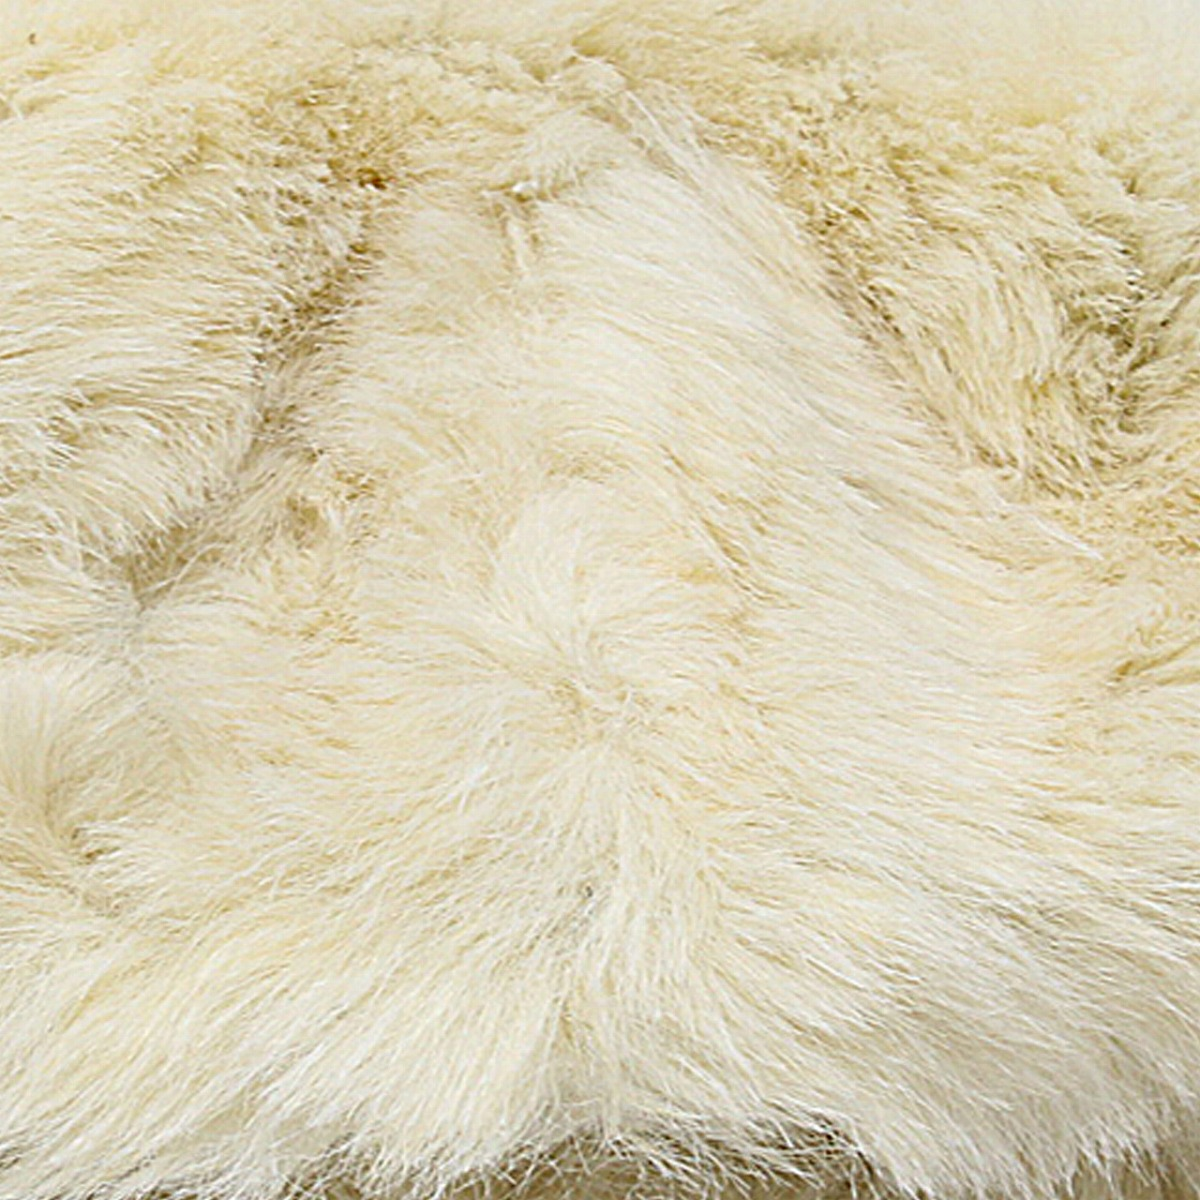 90eca12ef ROBERTidea Russian hat hat fur foreign countries brand Roberto idea Russian  hat Lady's hat white off-white (Christmas gift packing lapping free of ...